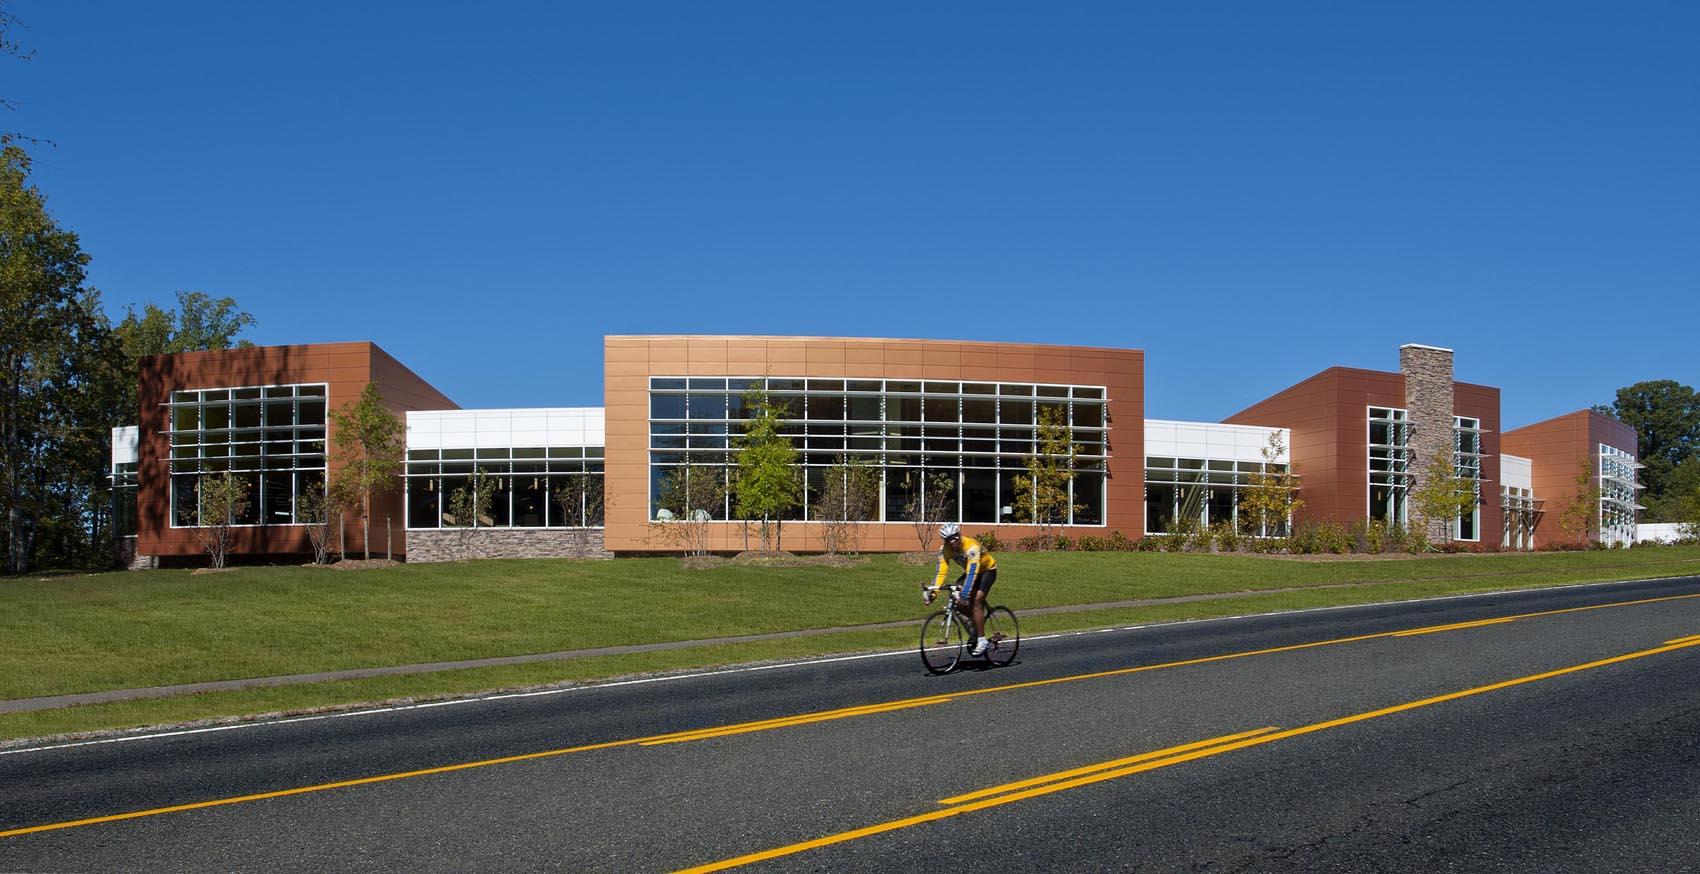 exterior of library with bike rider passing by